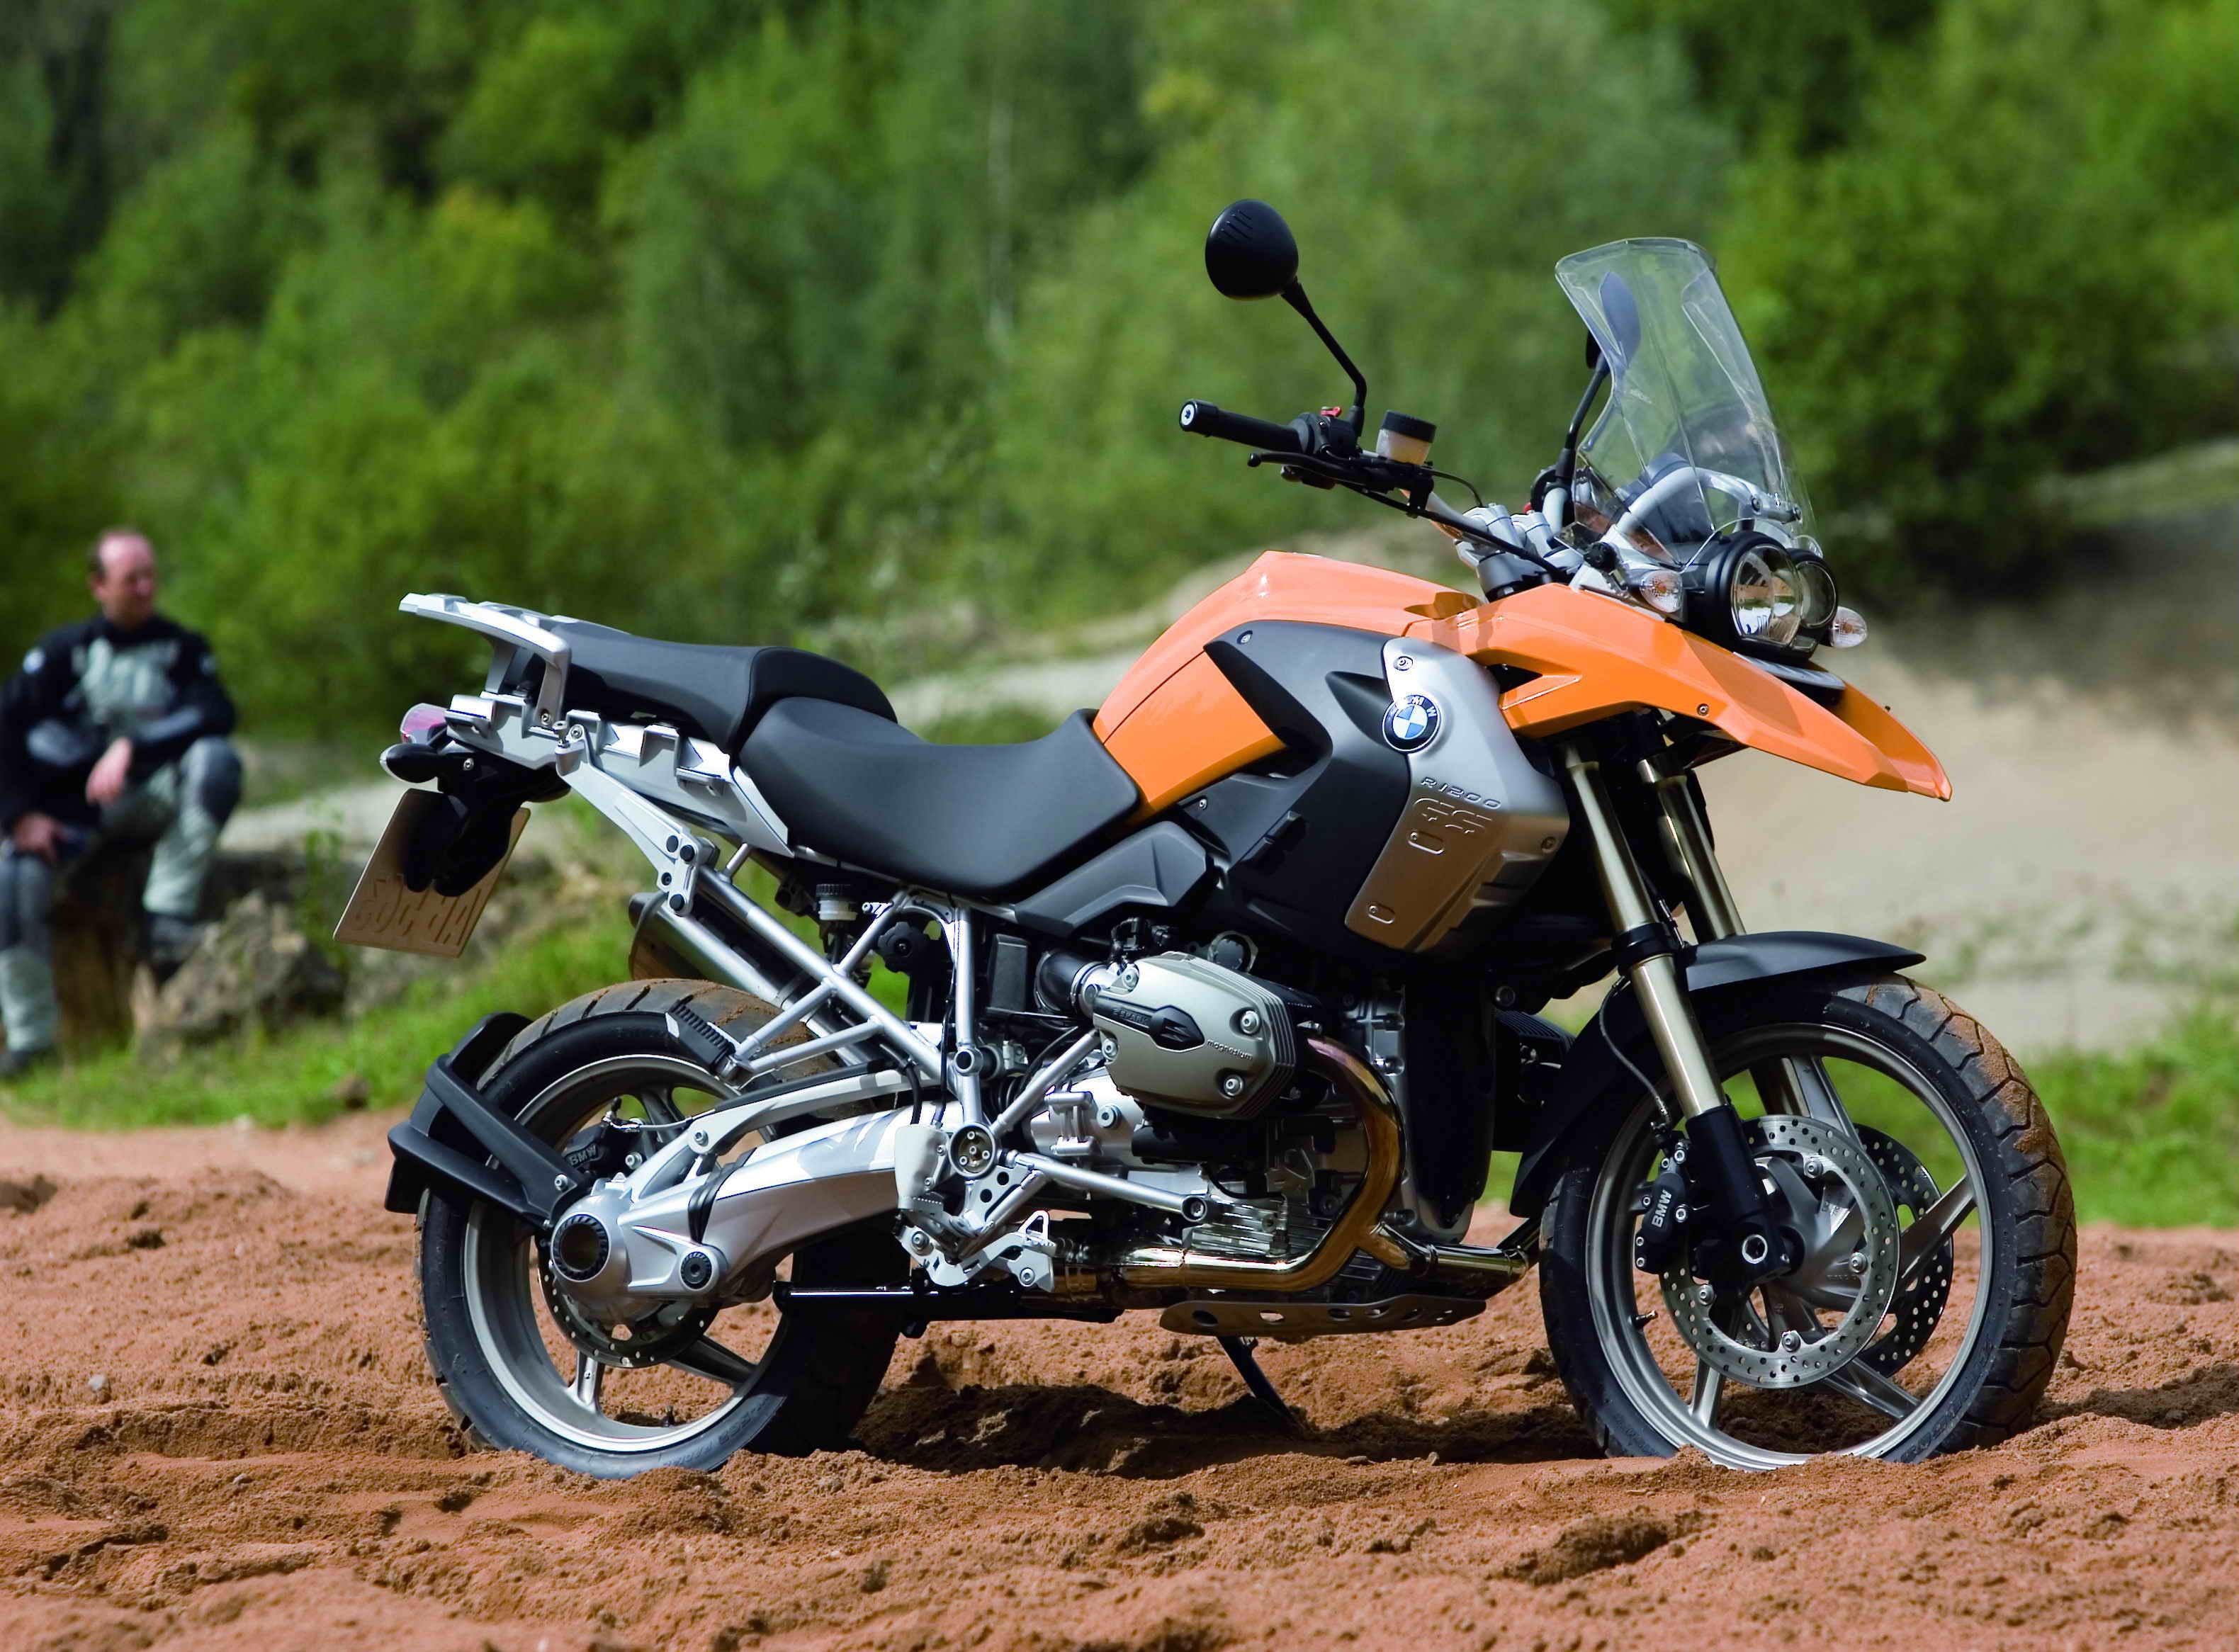 2010 BMW R 1200 RT Review - Top Speed